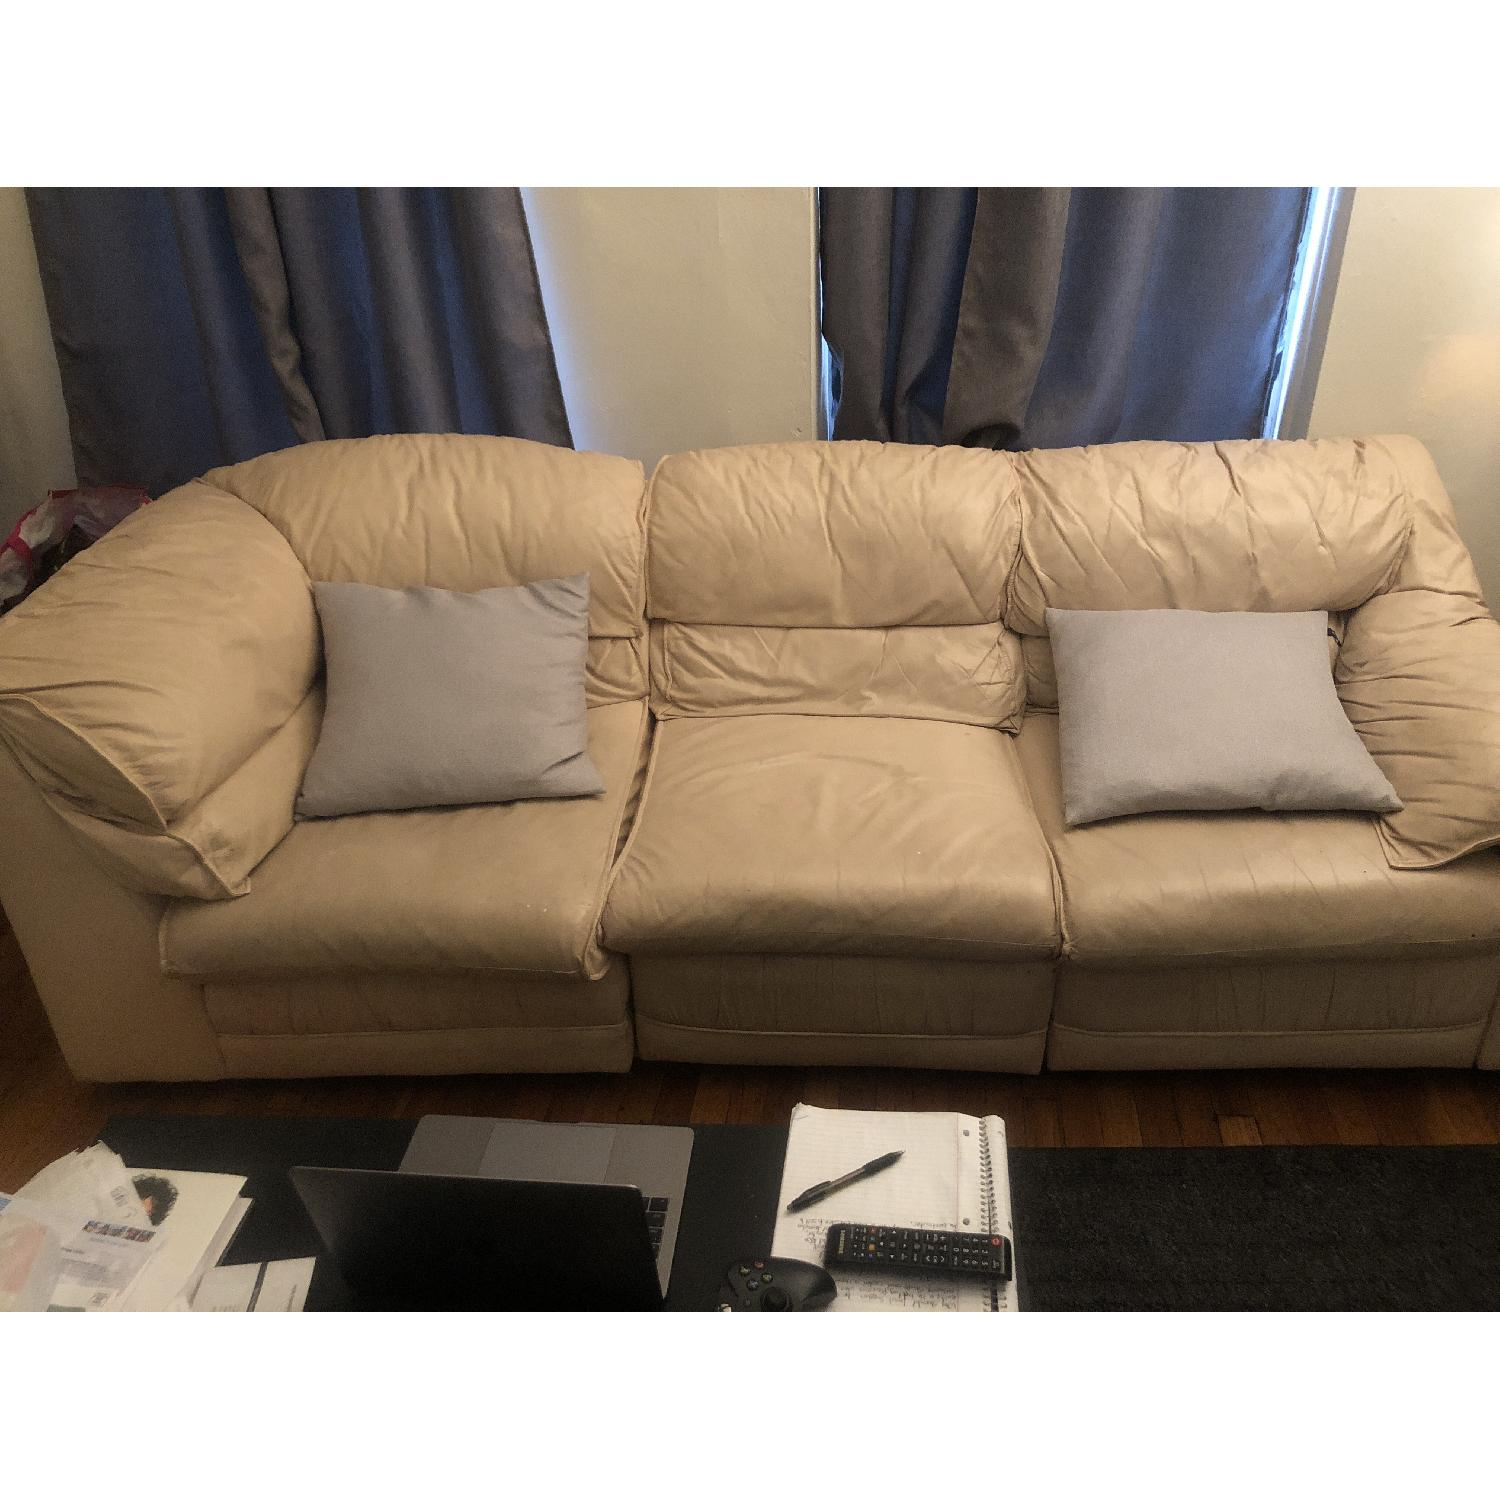 Reclining 3-Seater Leather Sofa